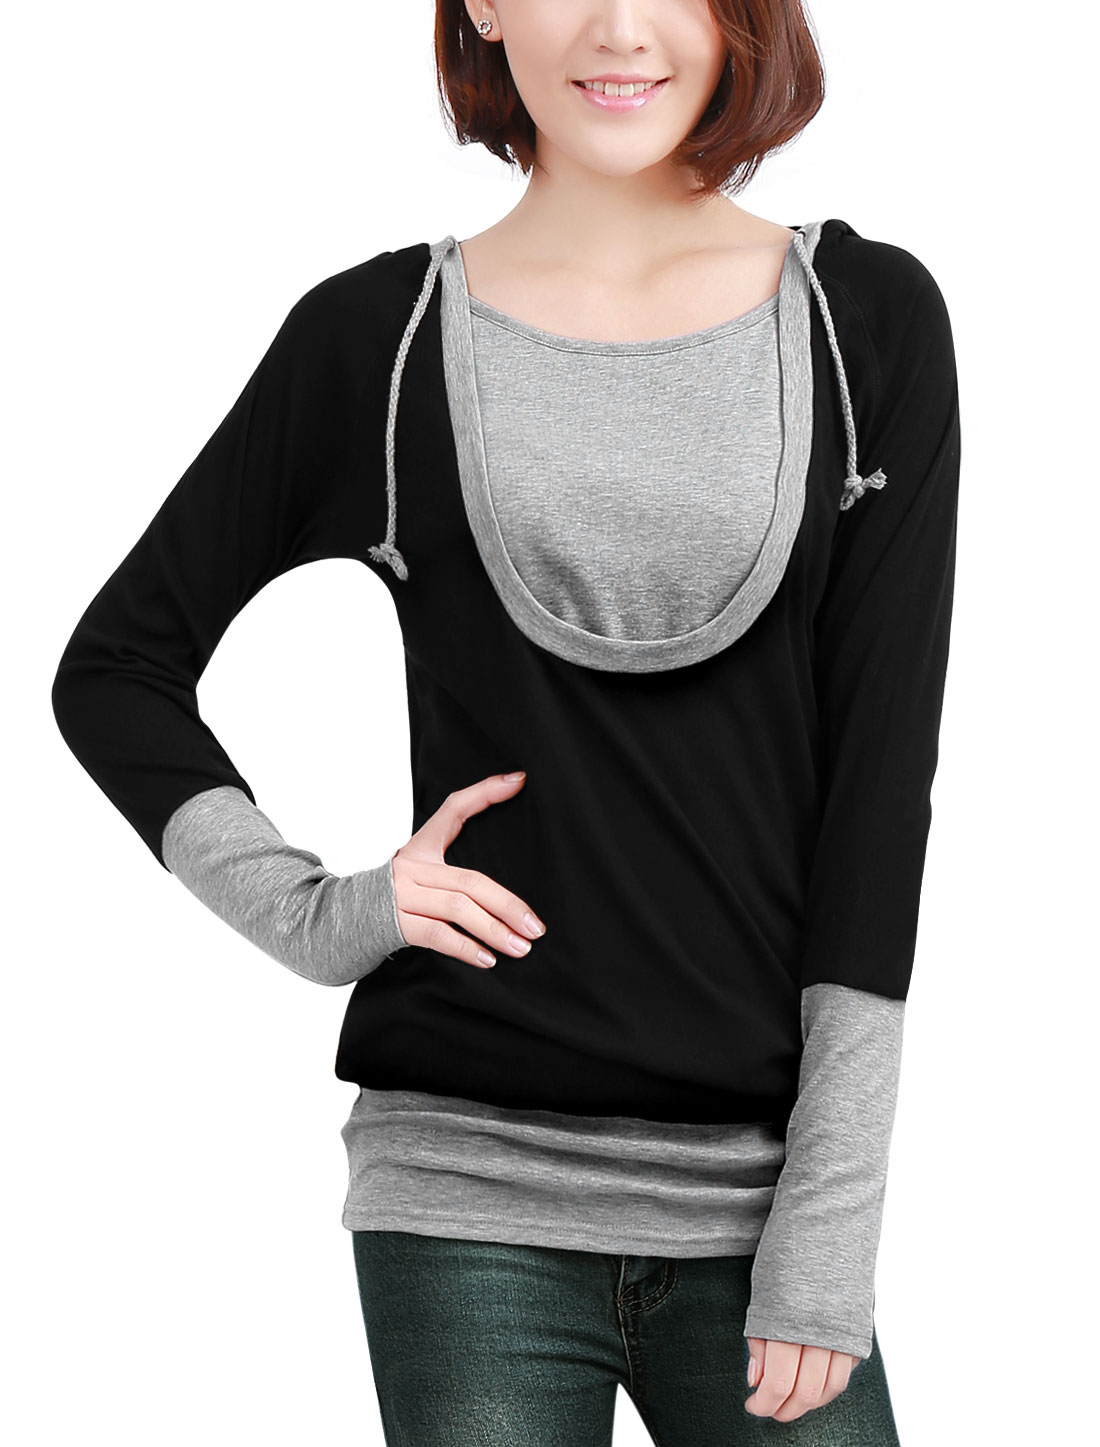 Ladies Black Gray Stretchy Long Sleeve Form-fitting Hoodie Tunic Shirt M